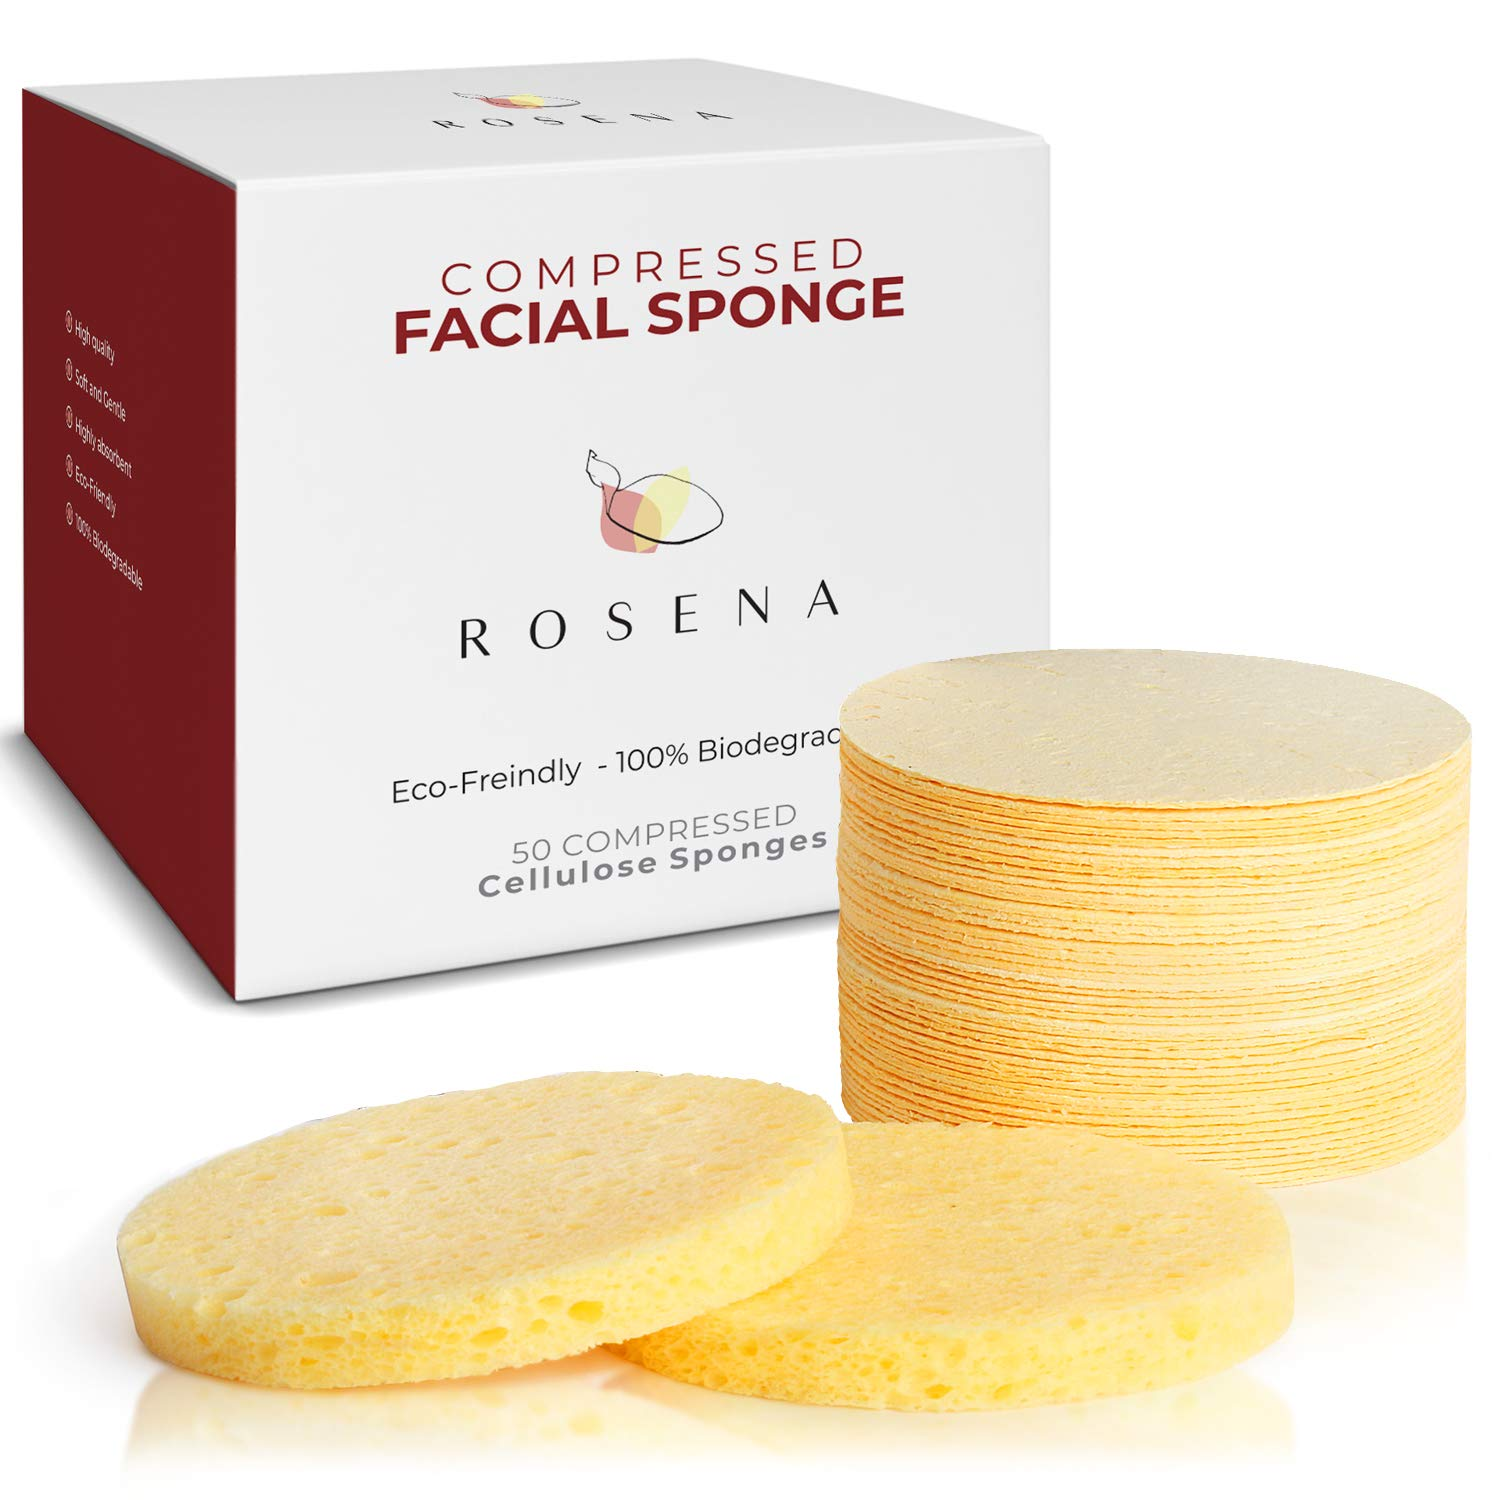 Amazon Com Facial Sponges 50 Count Compressed Cellulose Face